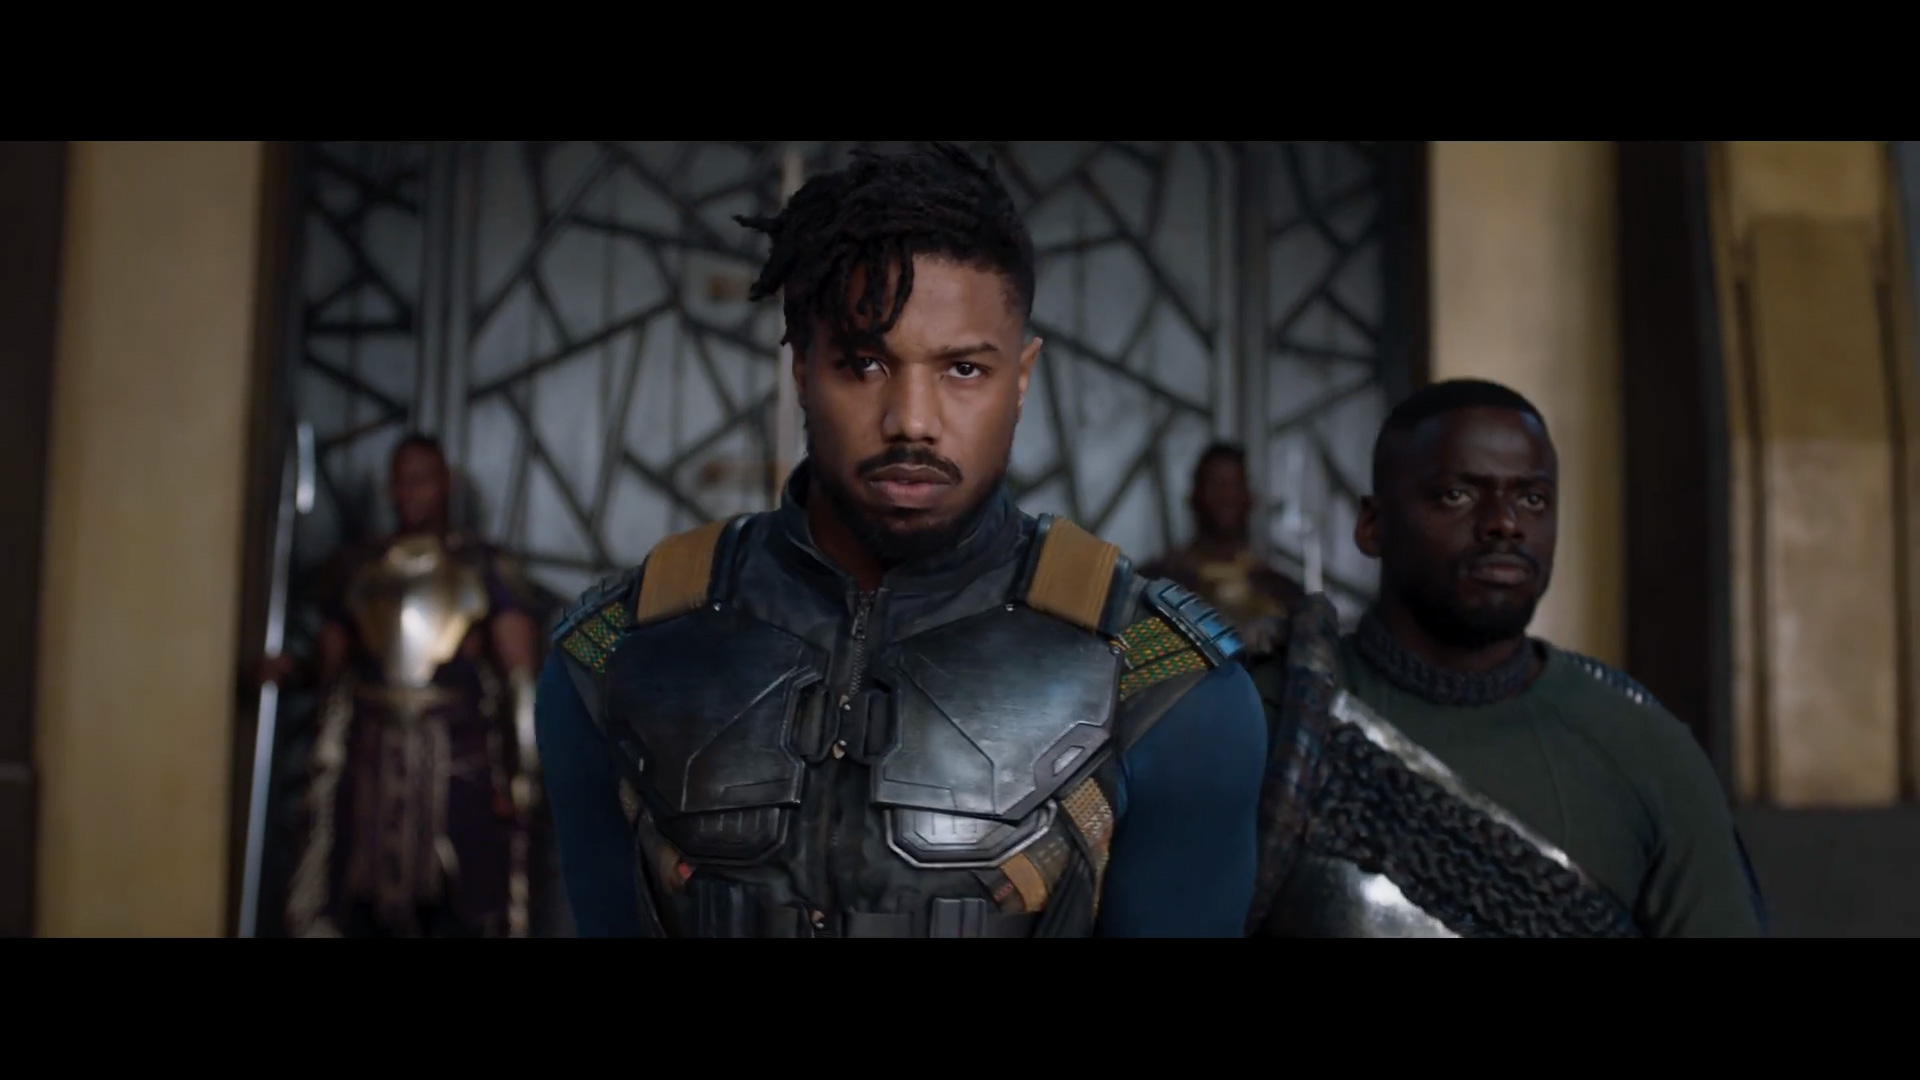 Black Panther Teaser Trailer Released